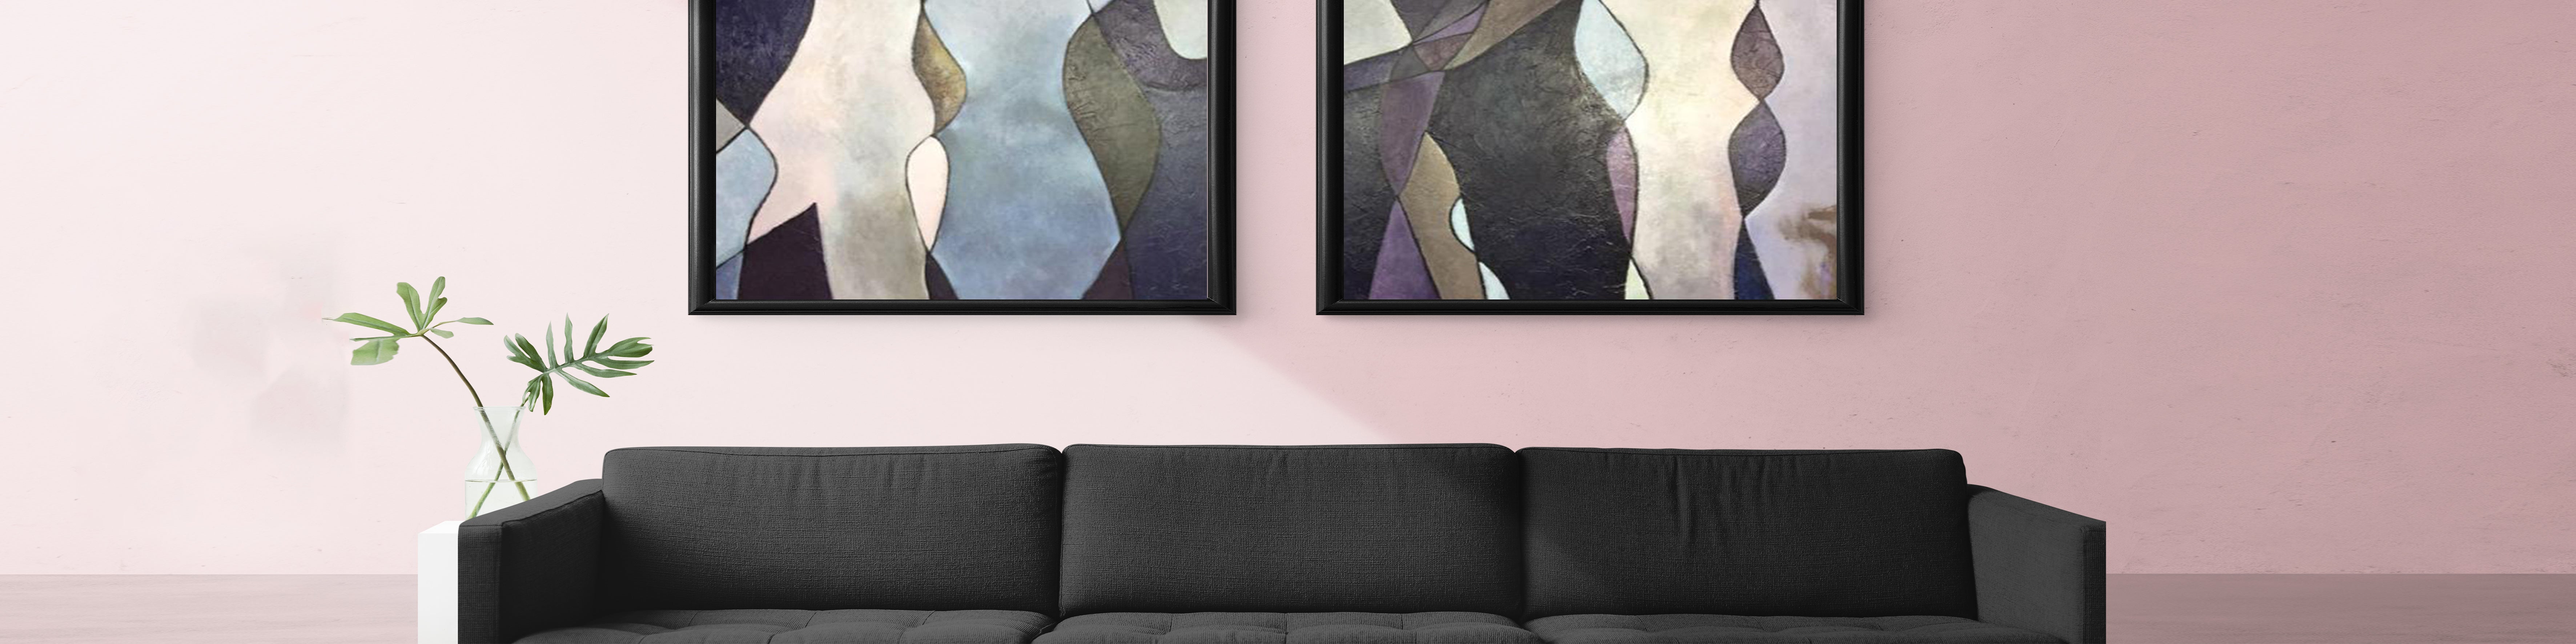 Quick guide on how to decorate a hallway with abstract acrylic art